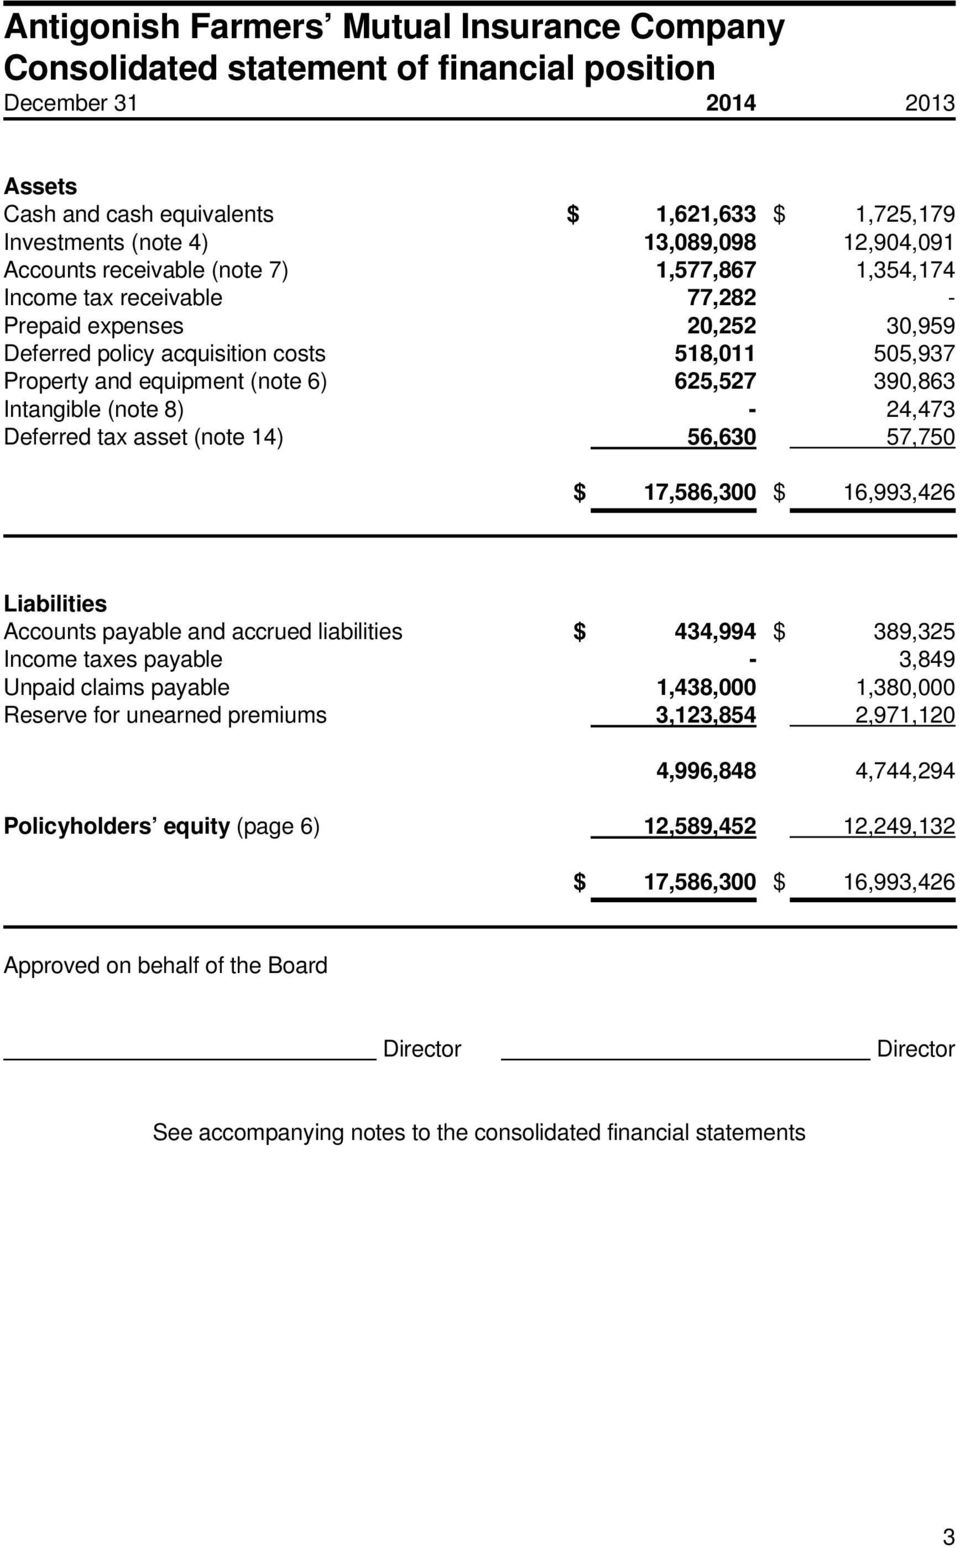 - 24,473 Deferred tax asset (note 14) 56,630 57,750 $ 17,586,300 $ 16,993,426 Liabilities Accounts payable and accrued liabilities $ 434,994 $ 389,325 Income taxes payable - 3,849 Unpaid claims